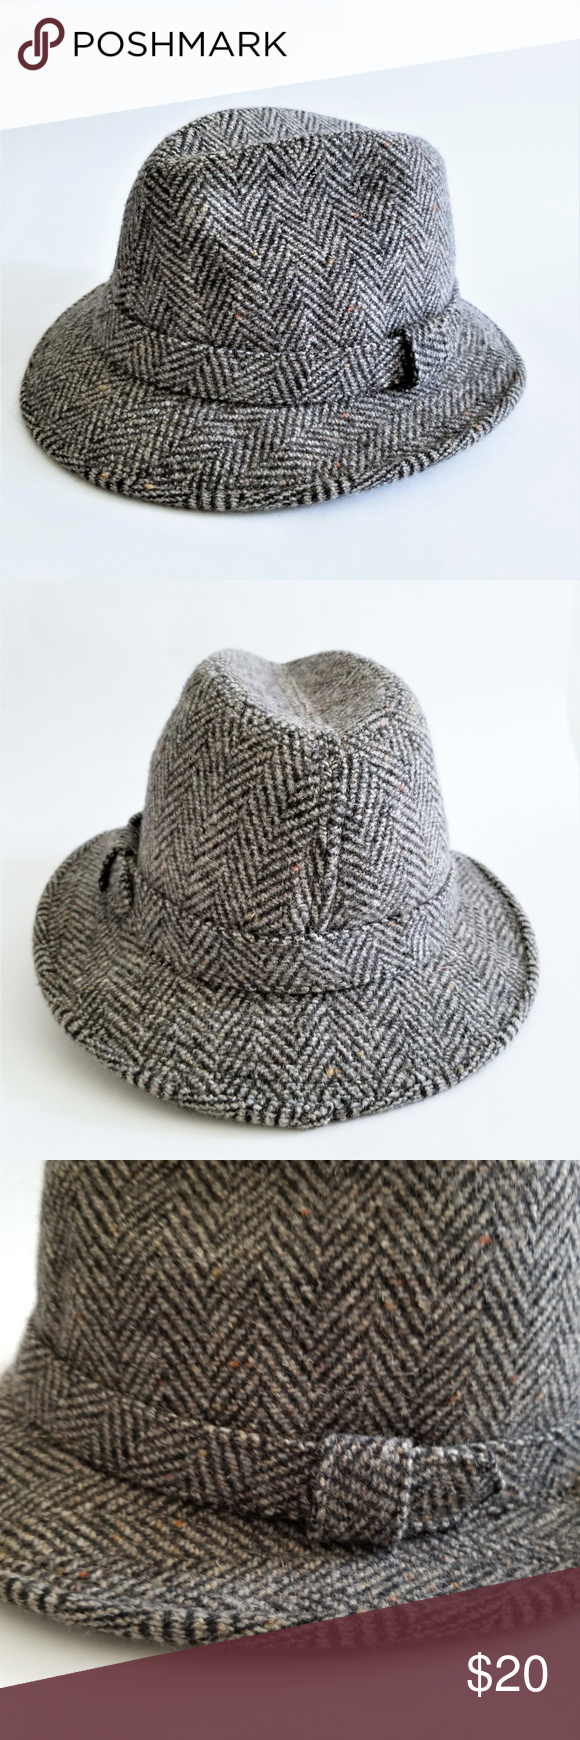 61b4299259db1 Pendleton Wool Tweed Gray Fedora Hat Pendleton Wool Tweed Gray Fedora Hat  100% virgin wool